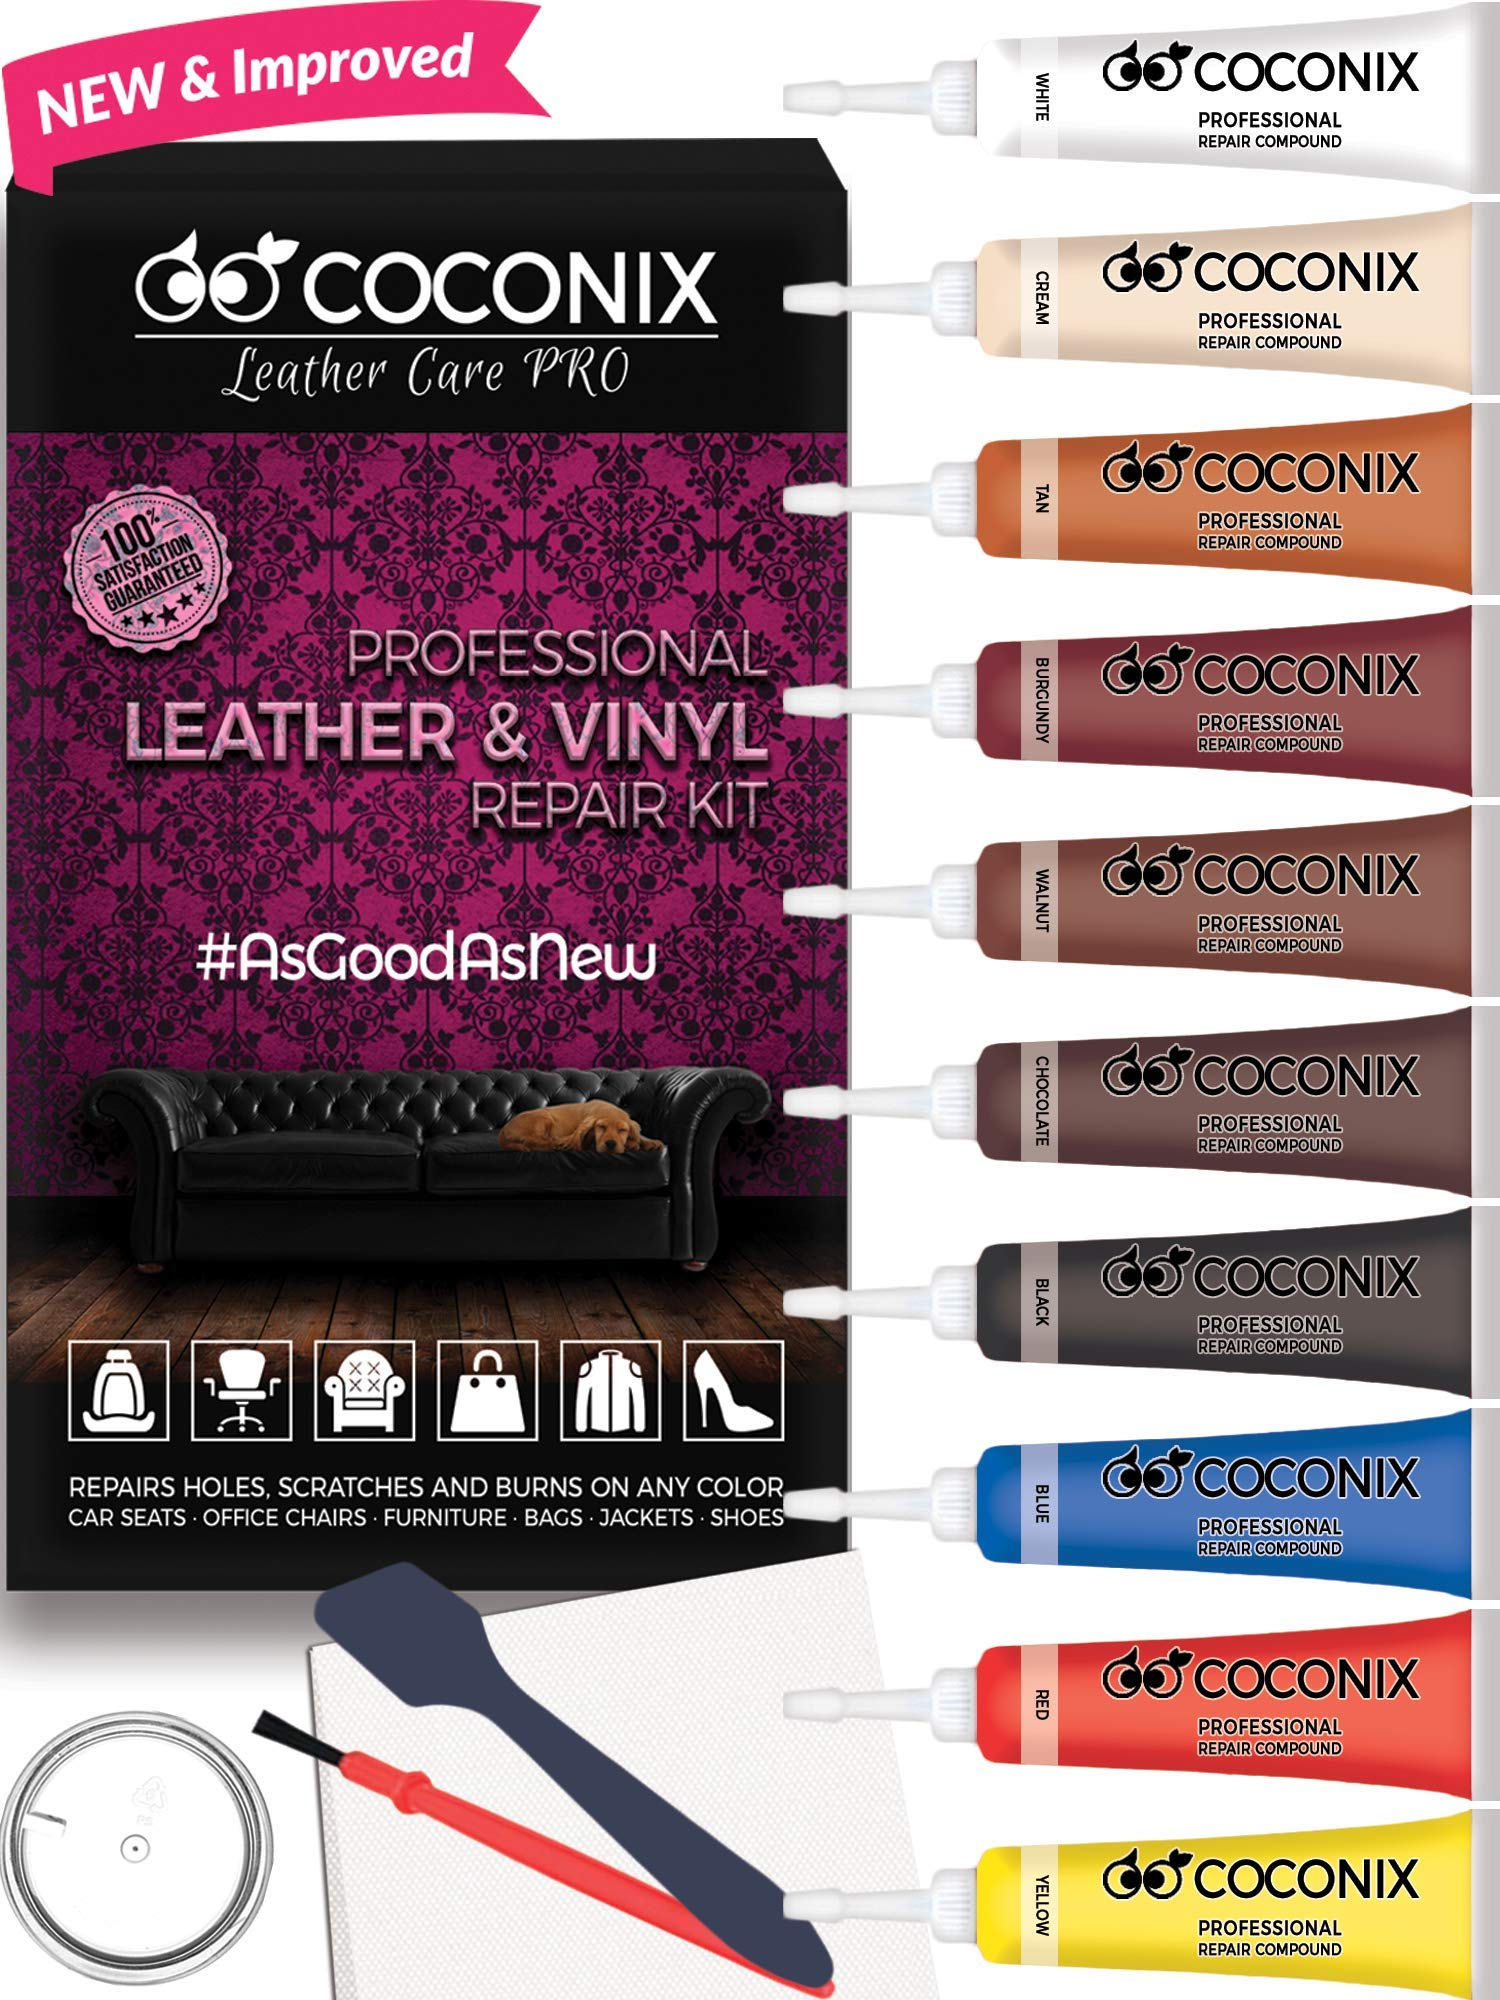 Coconix Vinyl and Leather Repair Kit - Restorer of Your Furniture, Jacket, Sofa, Boat or Car Seat, Super Easy Instructions to Match Any Color, Restore Any Material, Bonded, Italian, Pleather, Genuine